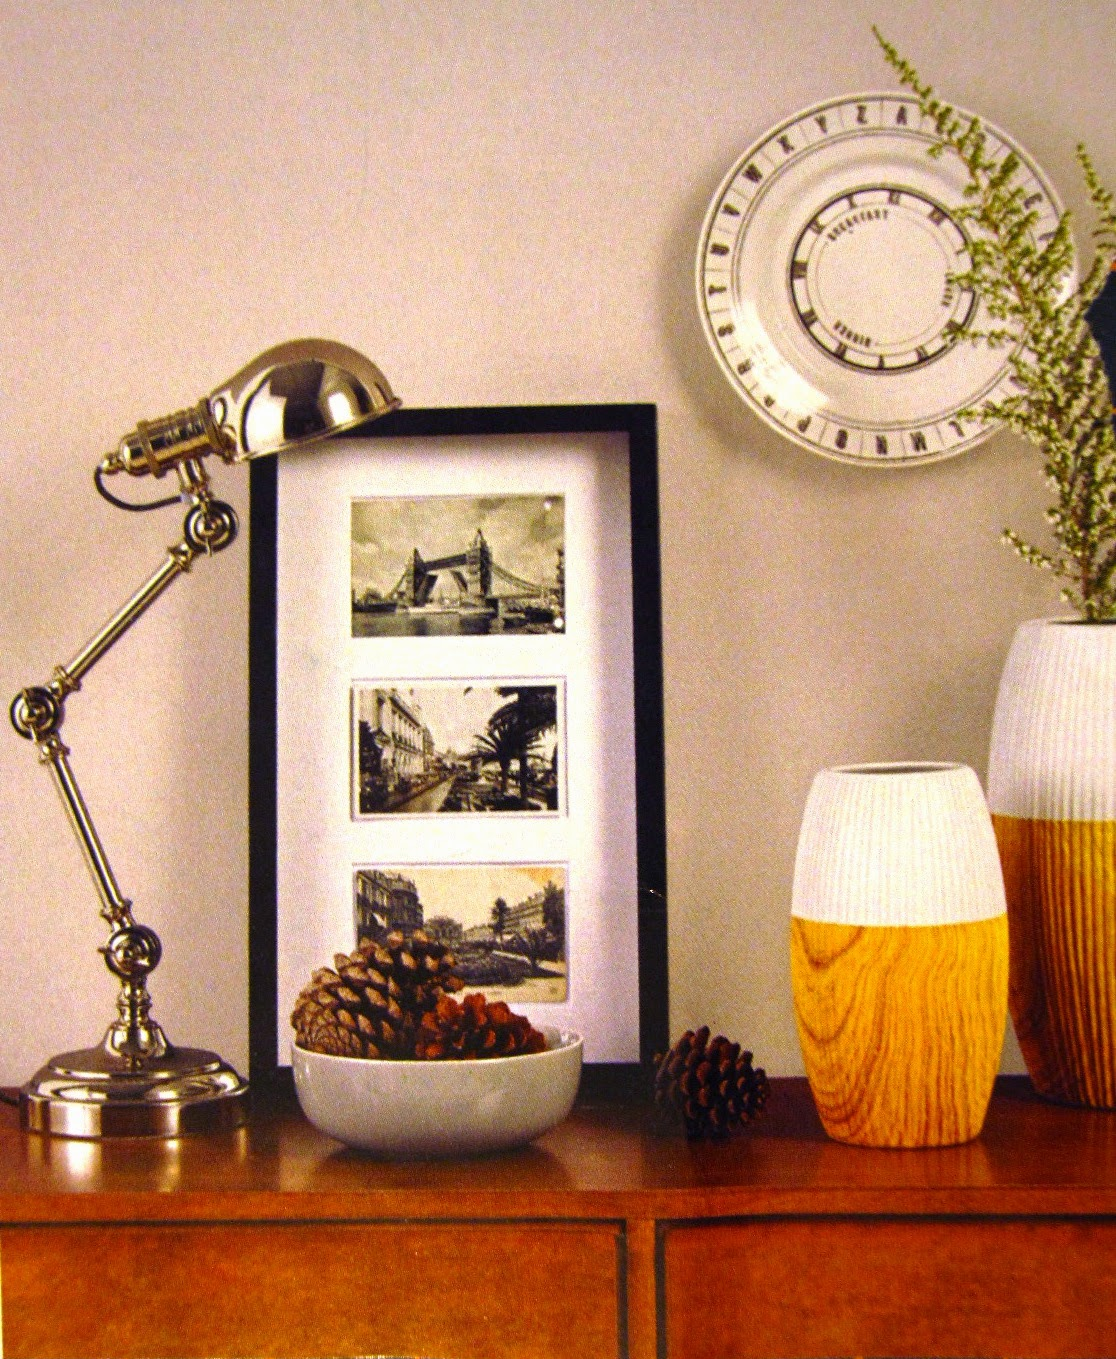 Catalogue ad showing a silver lamp, a bowl of pinecones, a three-section picture, two wooden vases (dip-painted white, one with a sprig of bush), and a decorator plate on the wall.